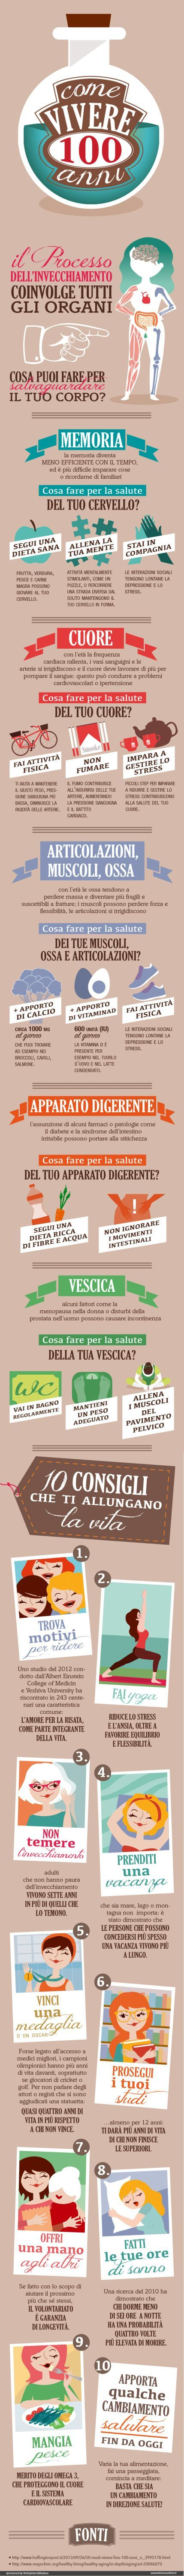 """Come vivere cent'anni"" infografica per Esseredonnaoline.it di Kleland studio"